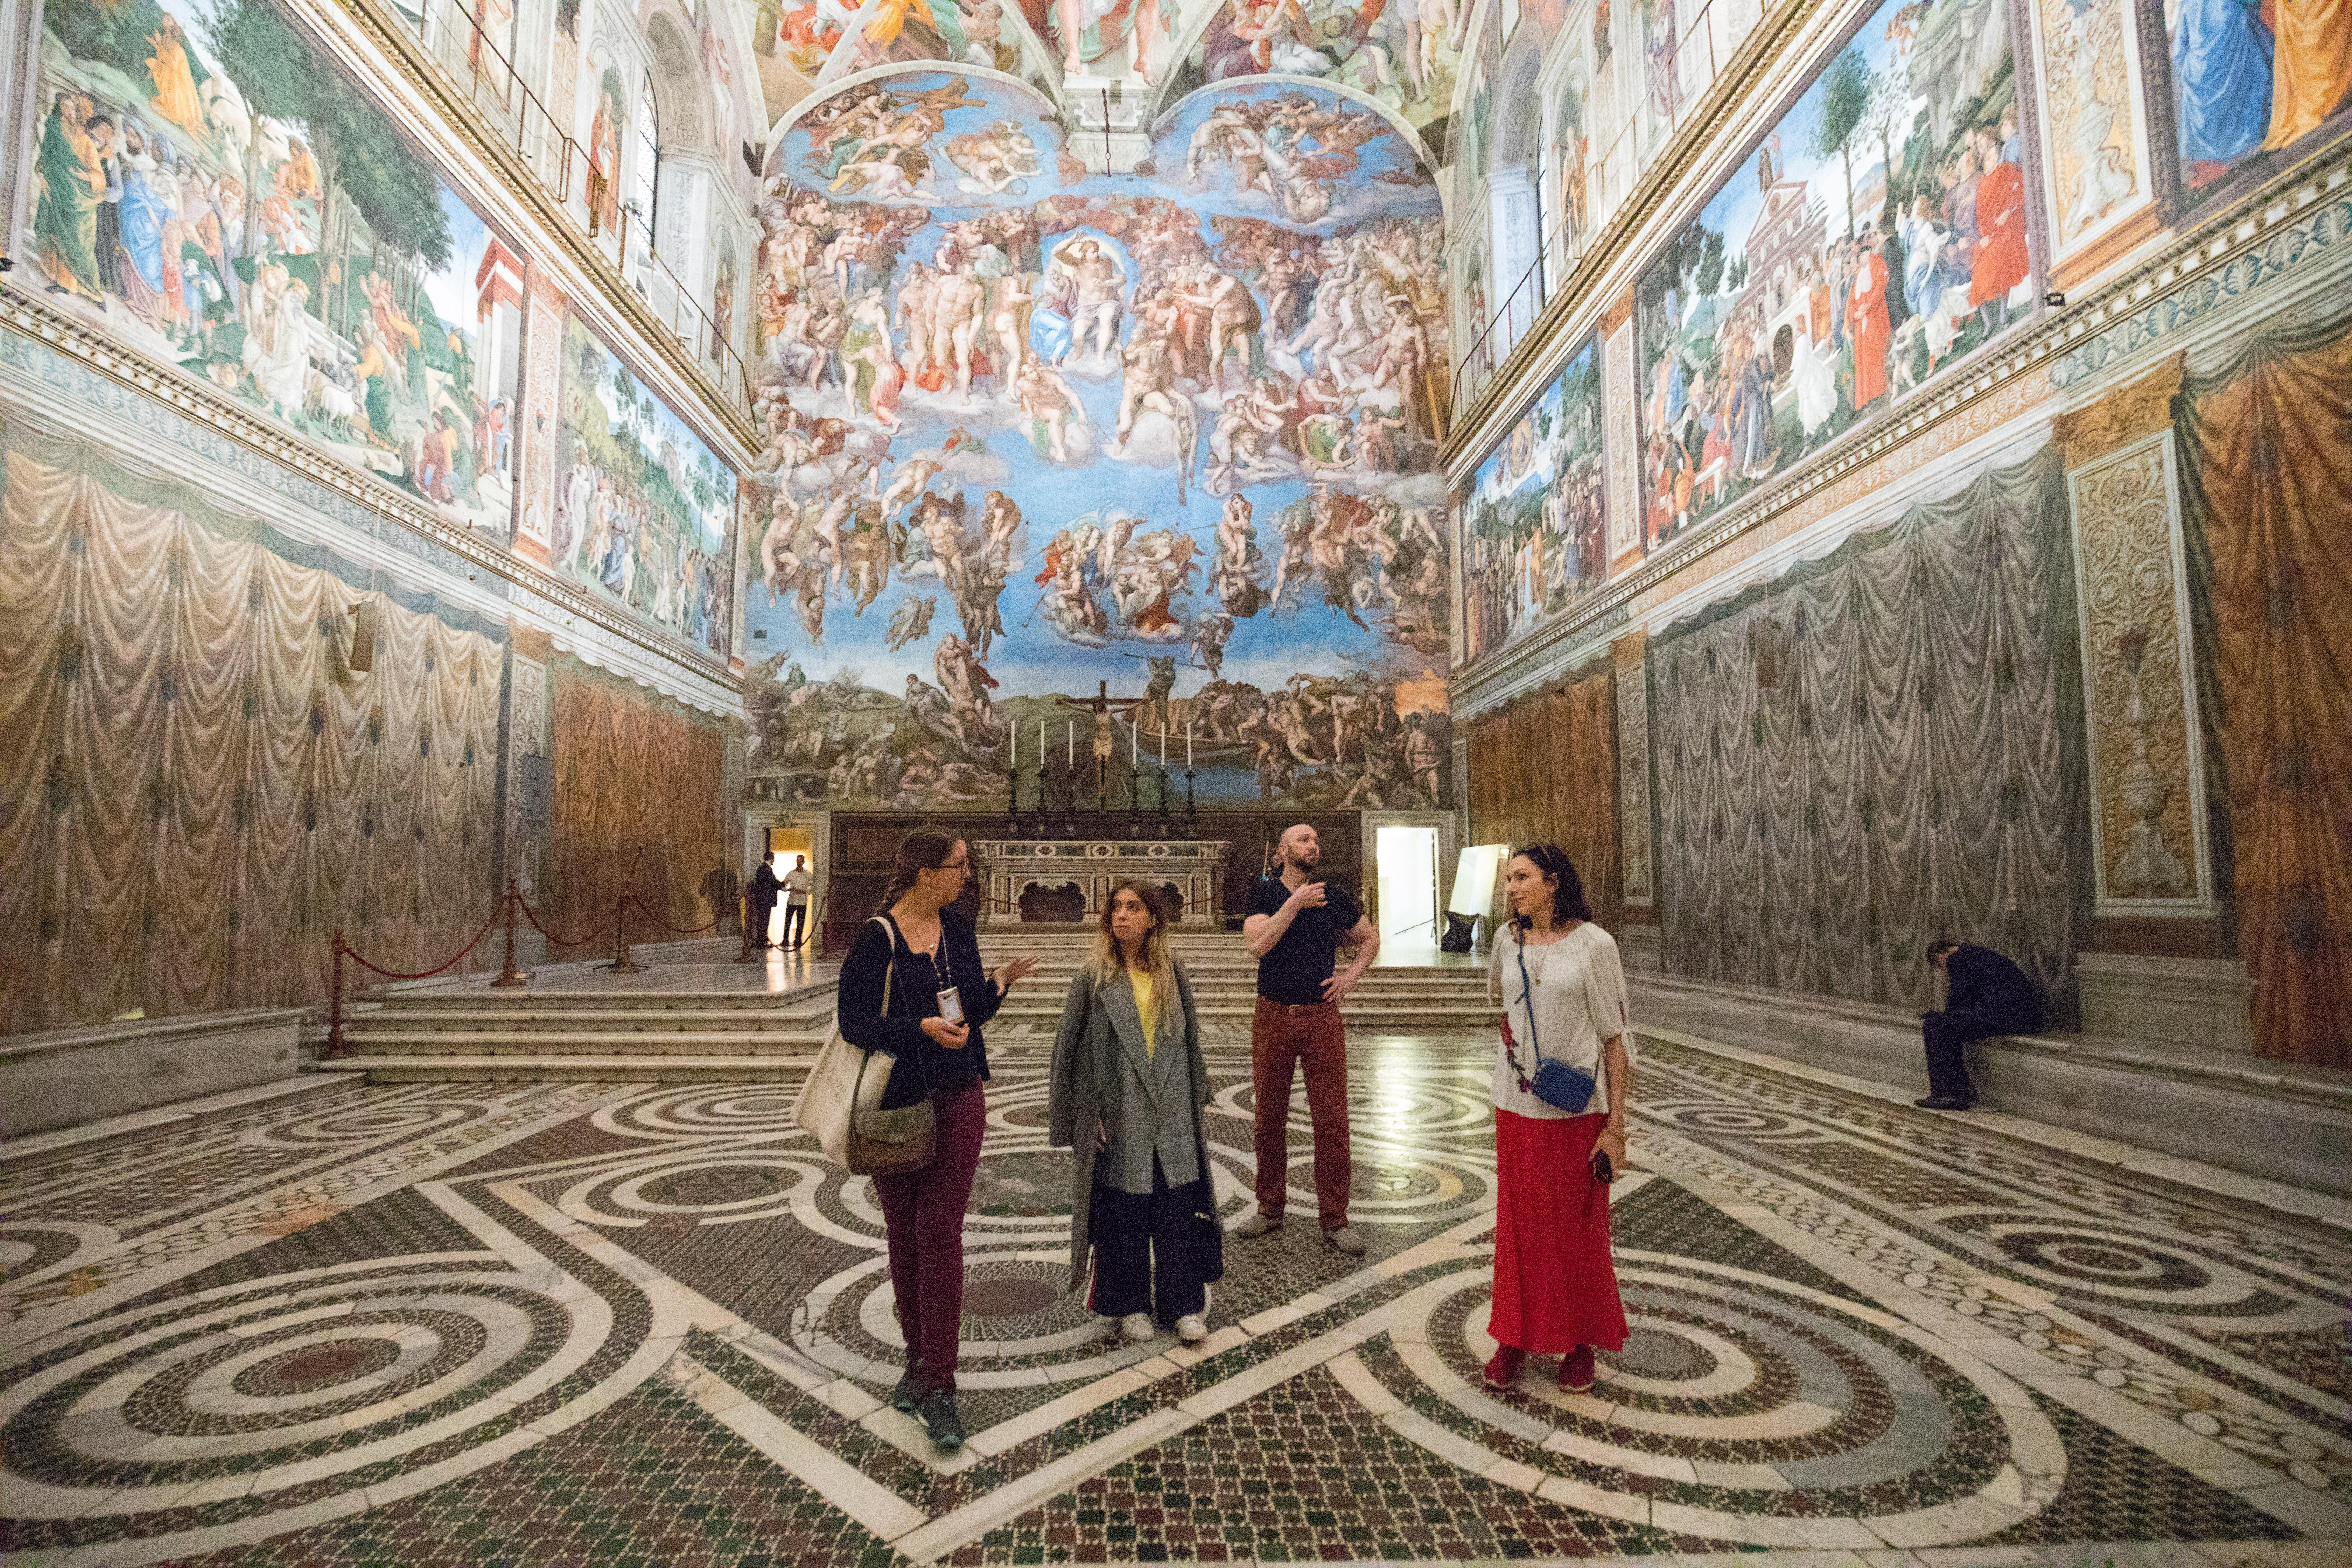 Skip the Line at the Sistine Chapel